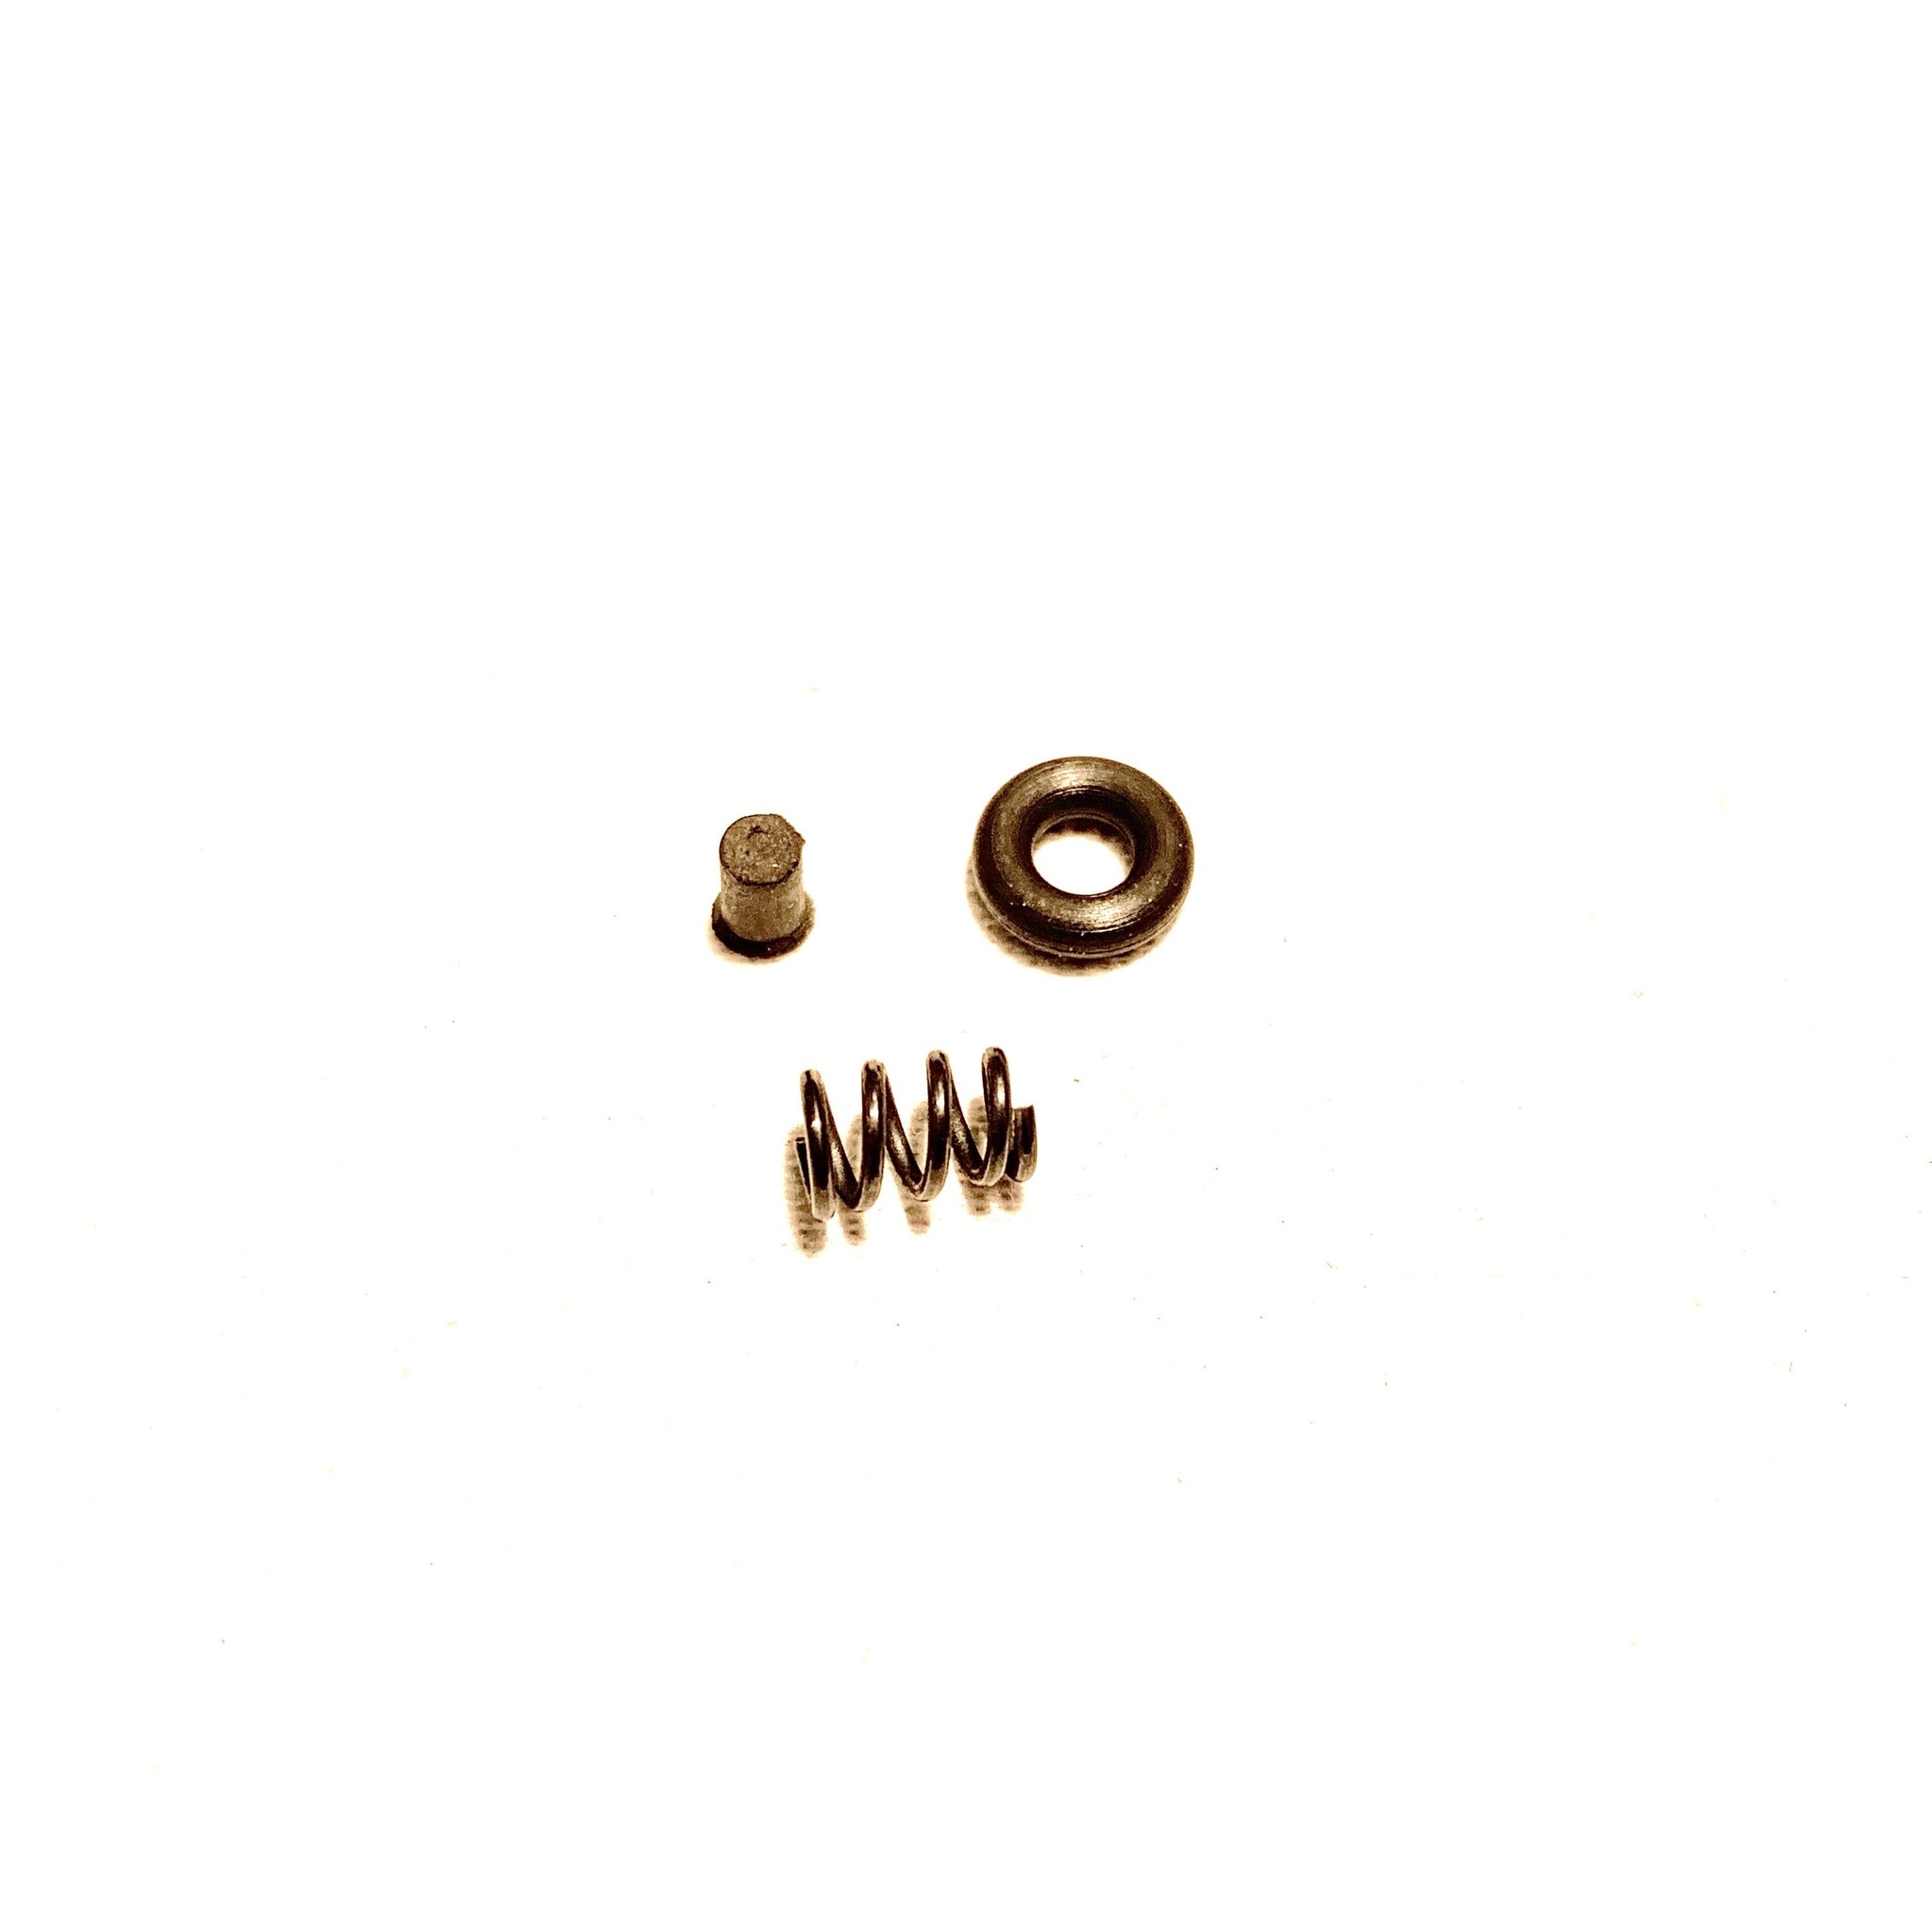 SPRINCO 5-COIL EXTRACTOR SRING KIT